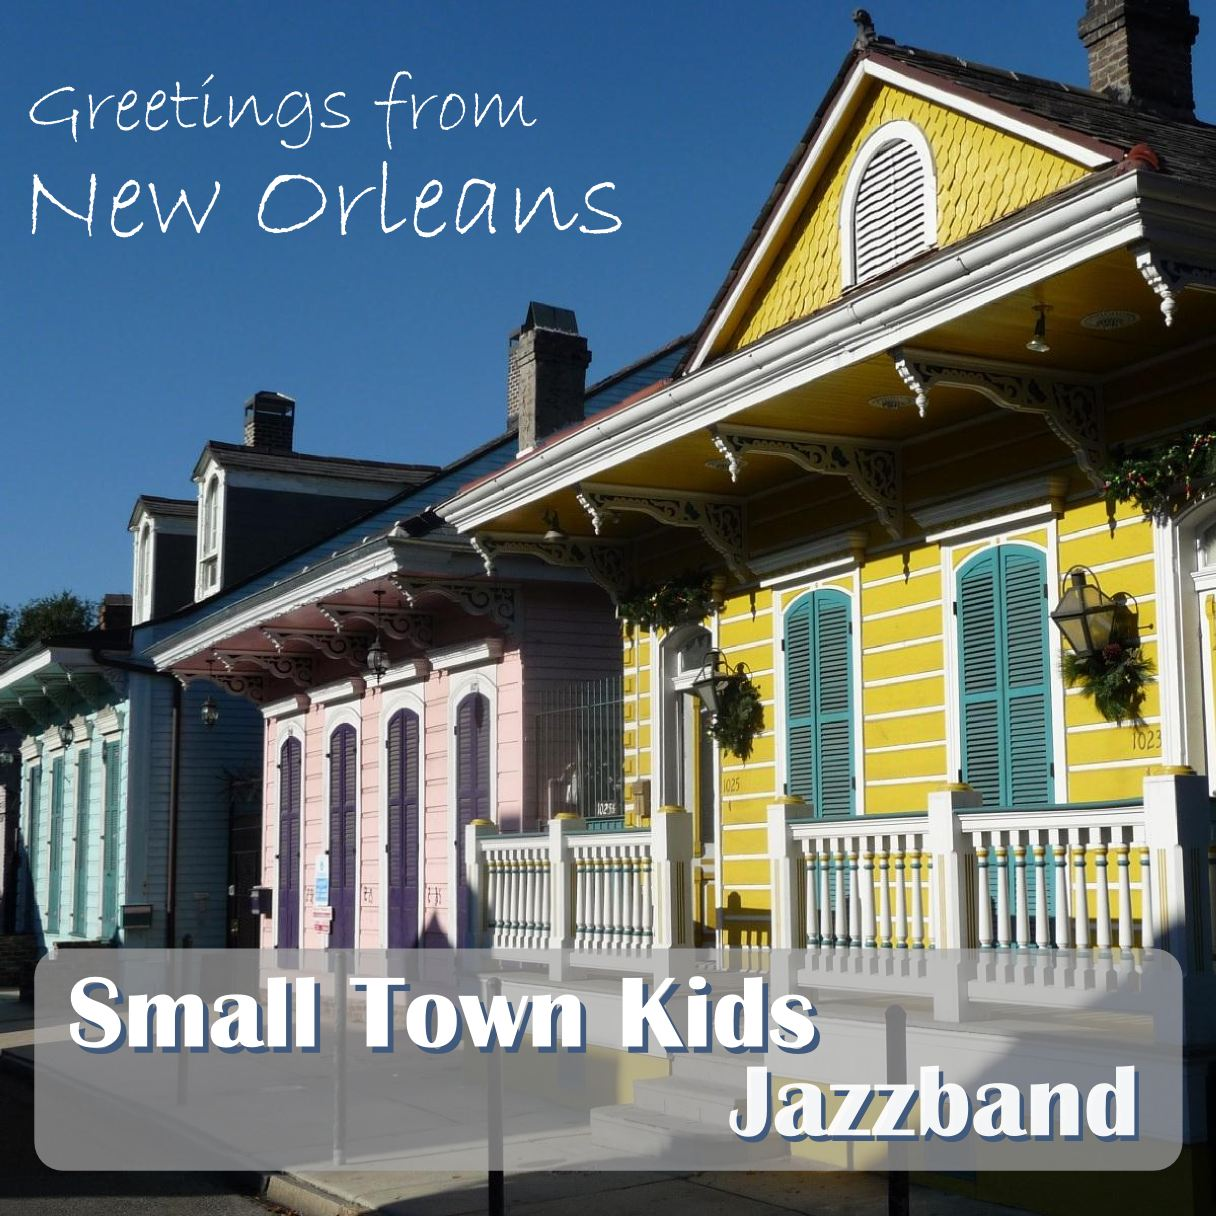 Small Town Kids - Greetings from New Orleans